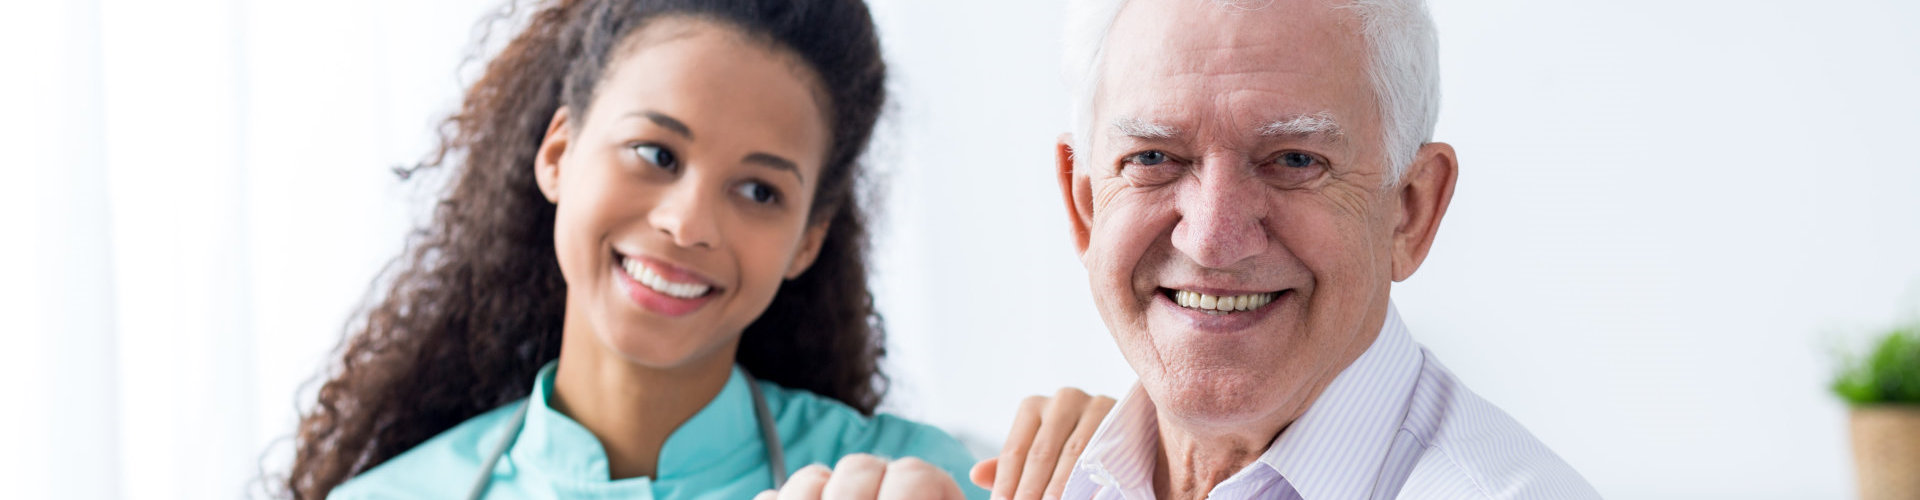 caregiver and old man smiling genuinely